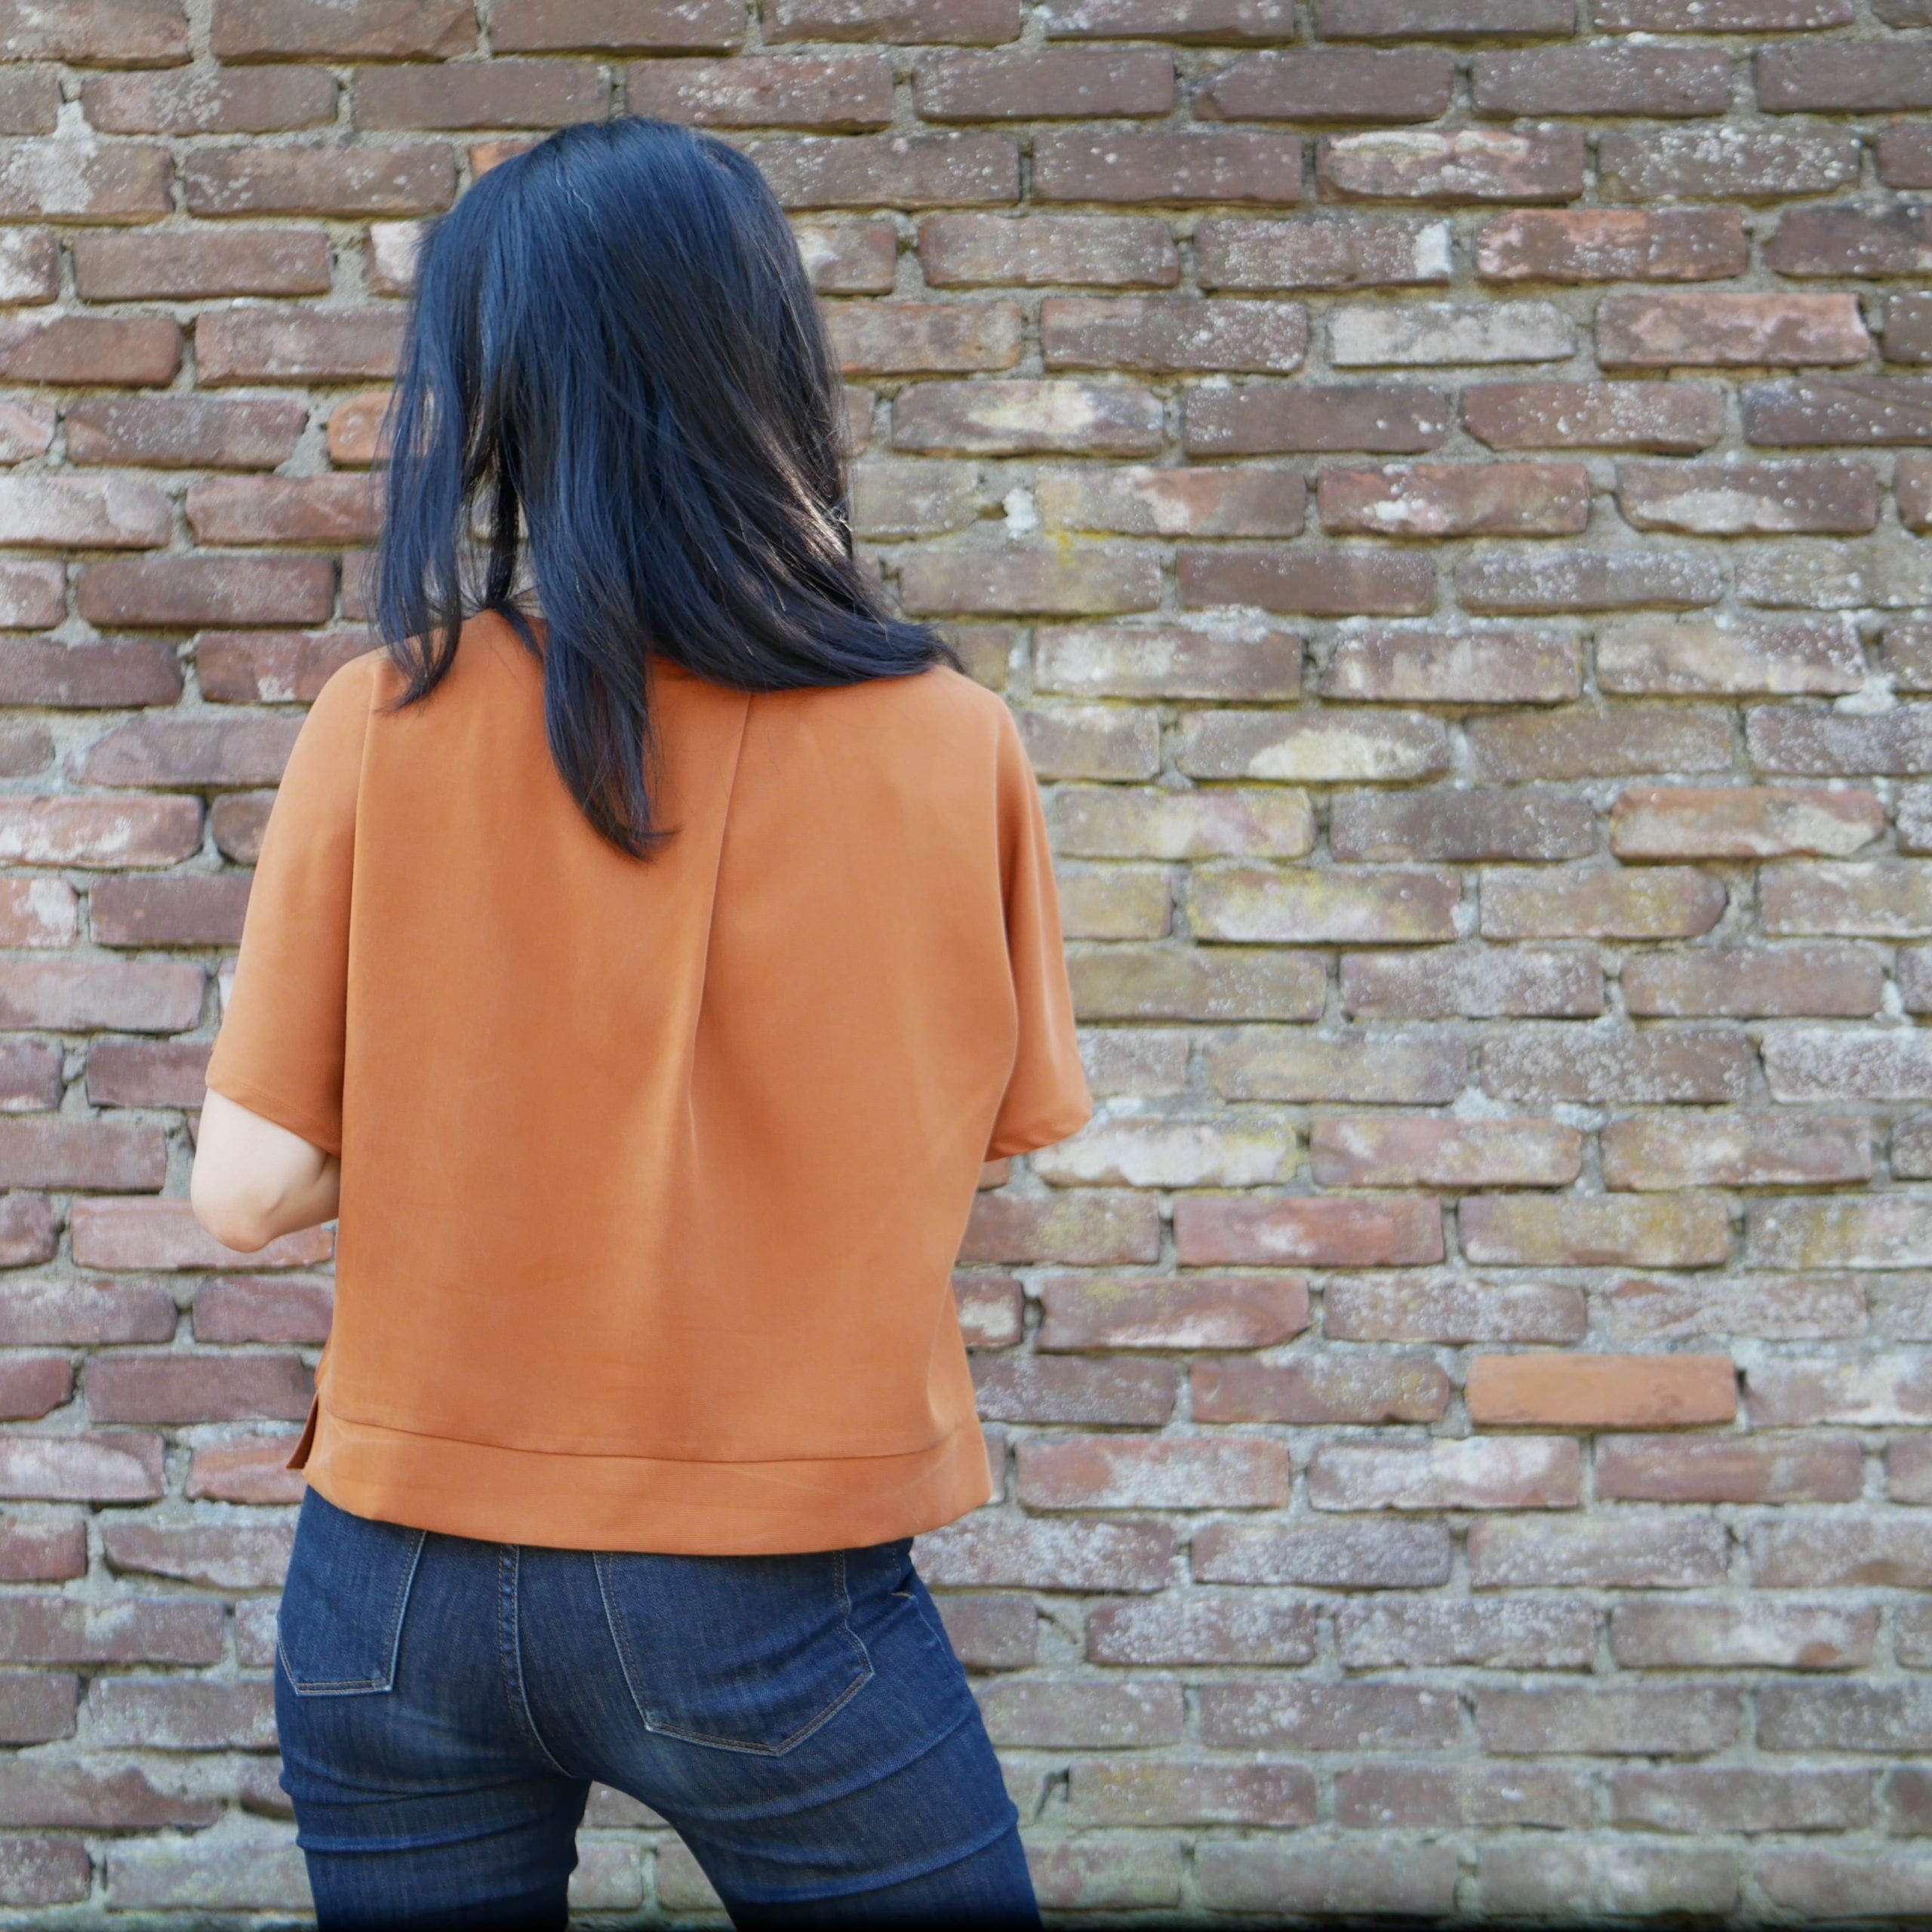 Kate wears a copper coloured top against a brick wall (back view)